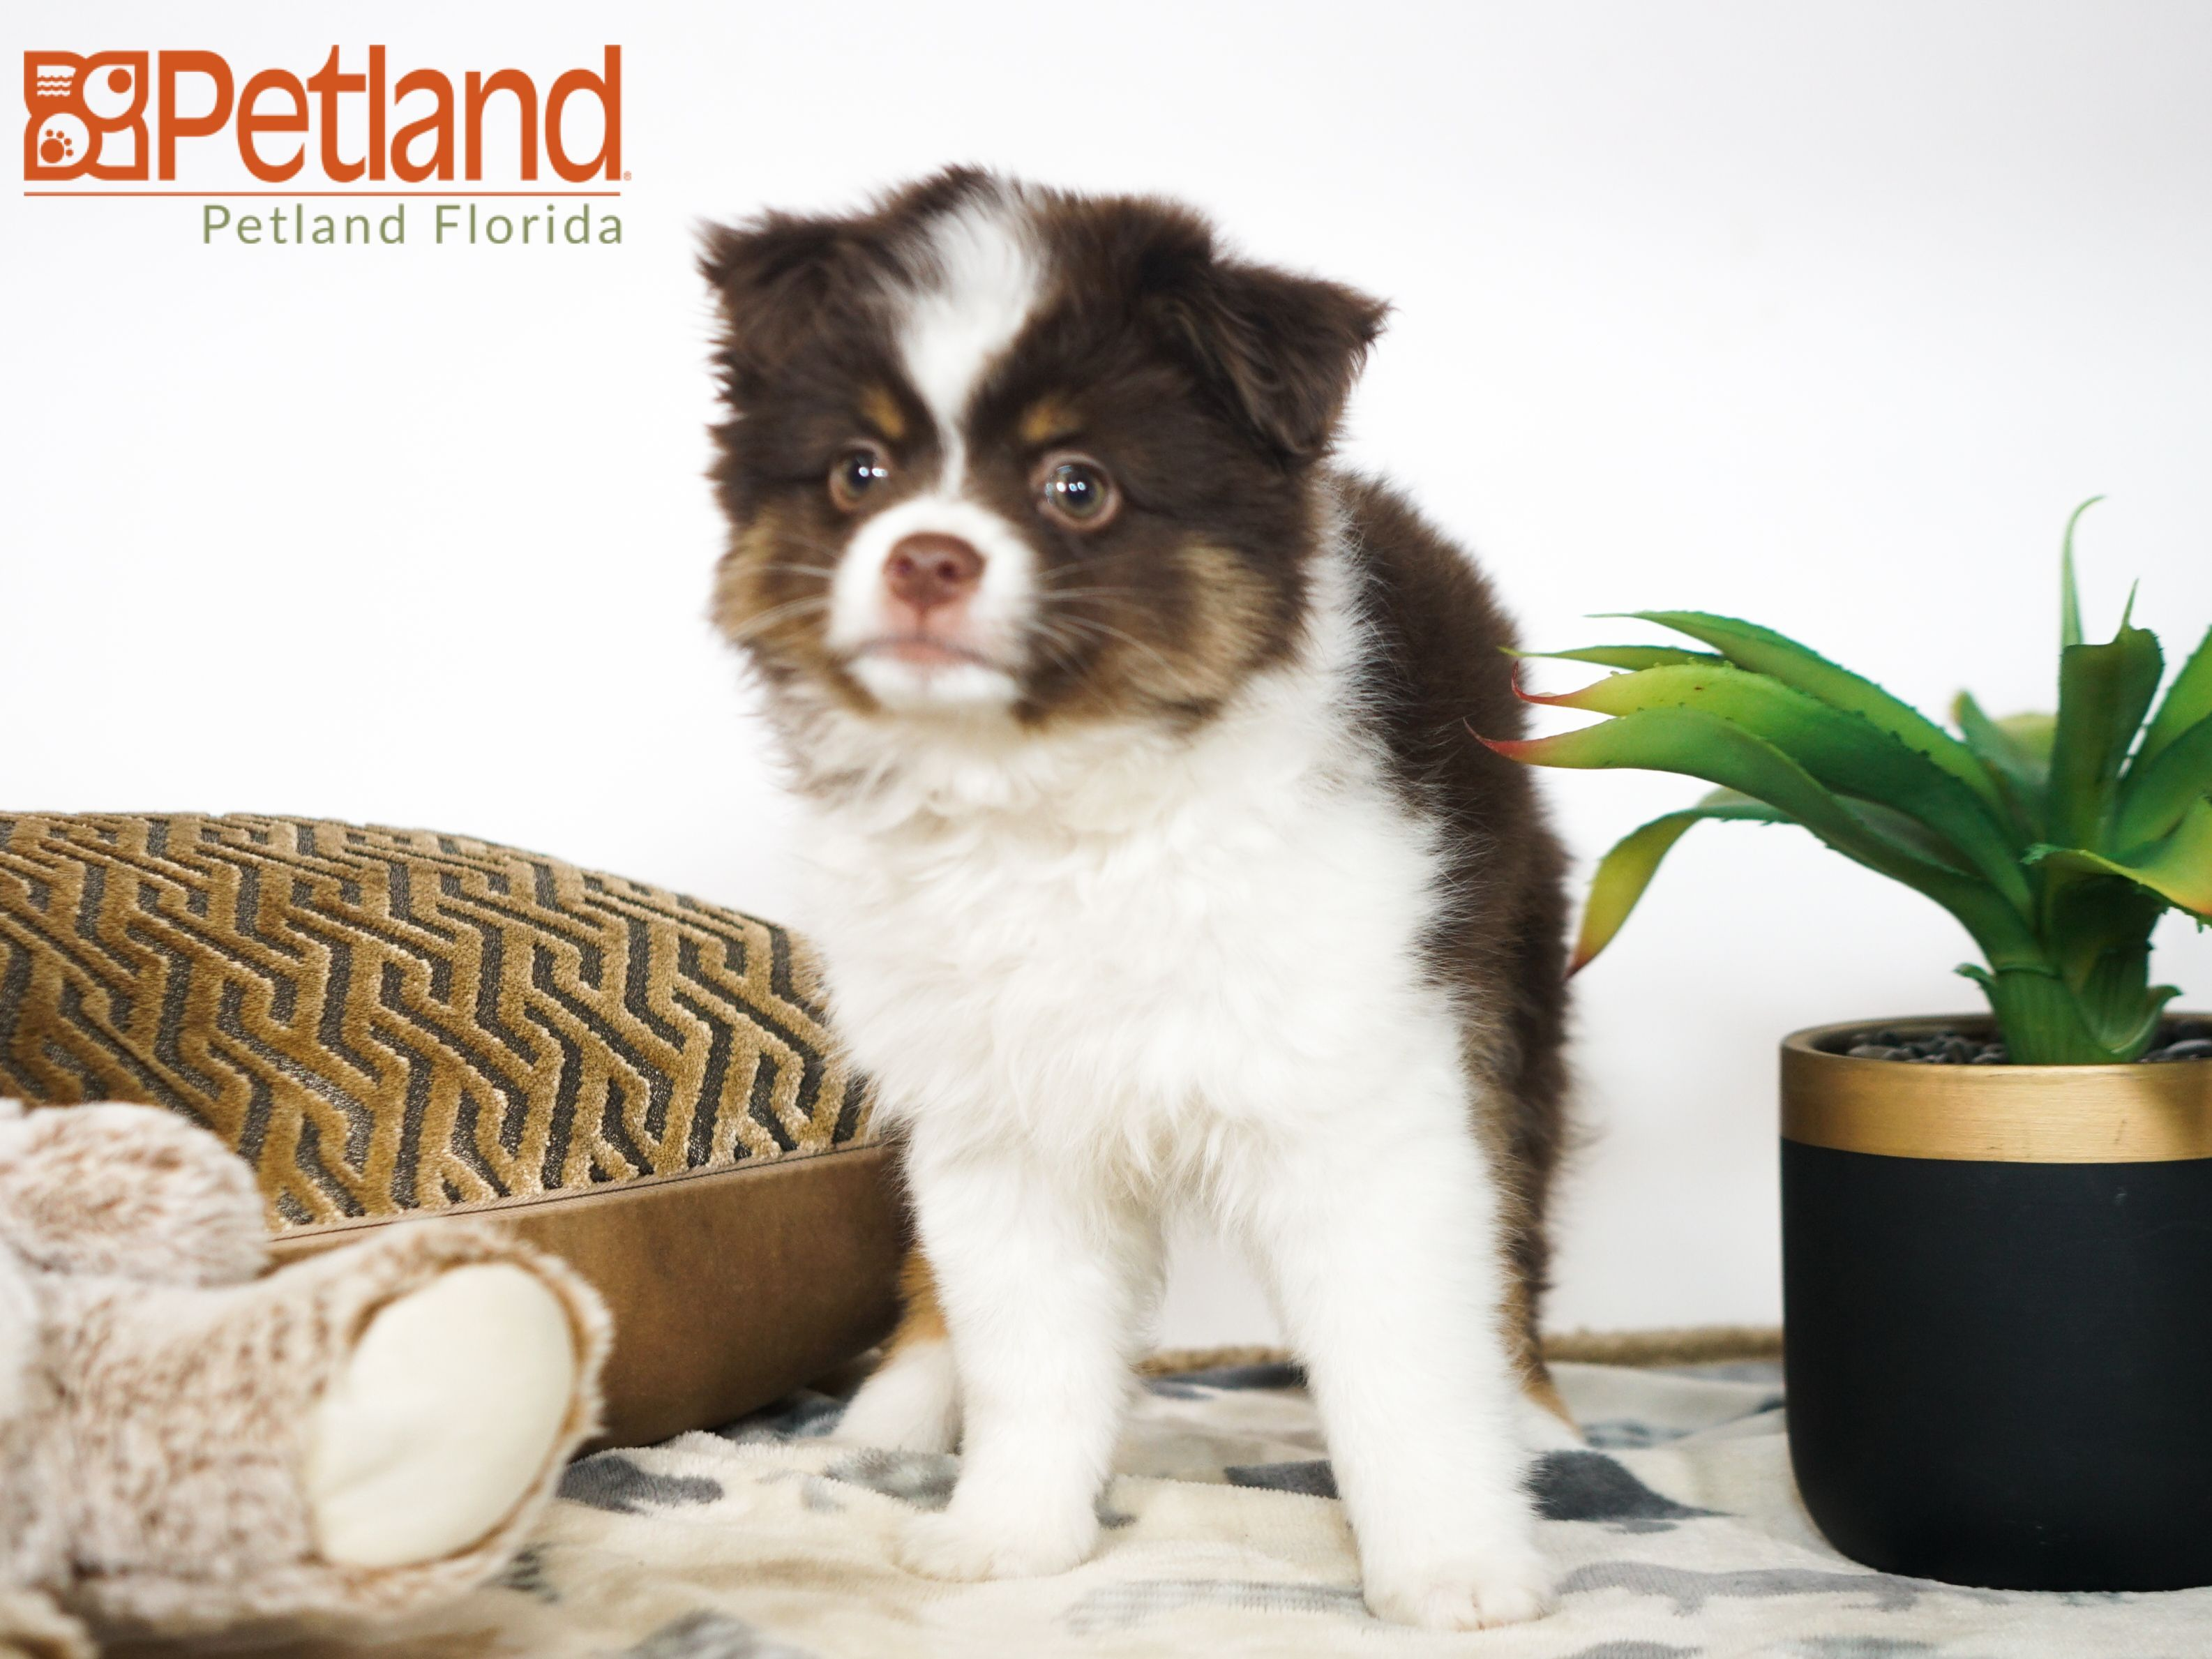 Petland Florida Has Toy Australian Shepherd Puppies For Sale Check Out All Our Available Pup Puppy Friends Australian Shepherd Puppies Toy Australian Shepherd